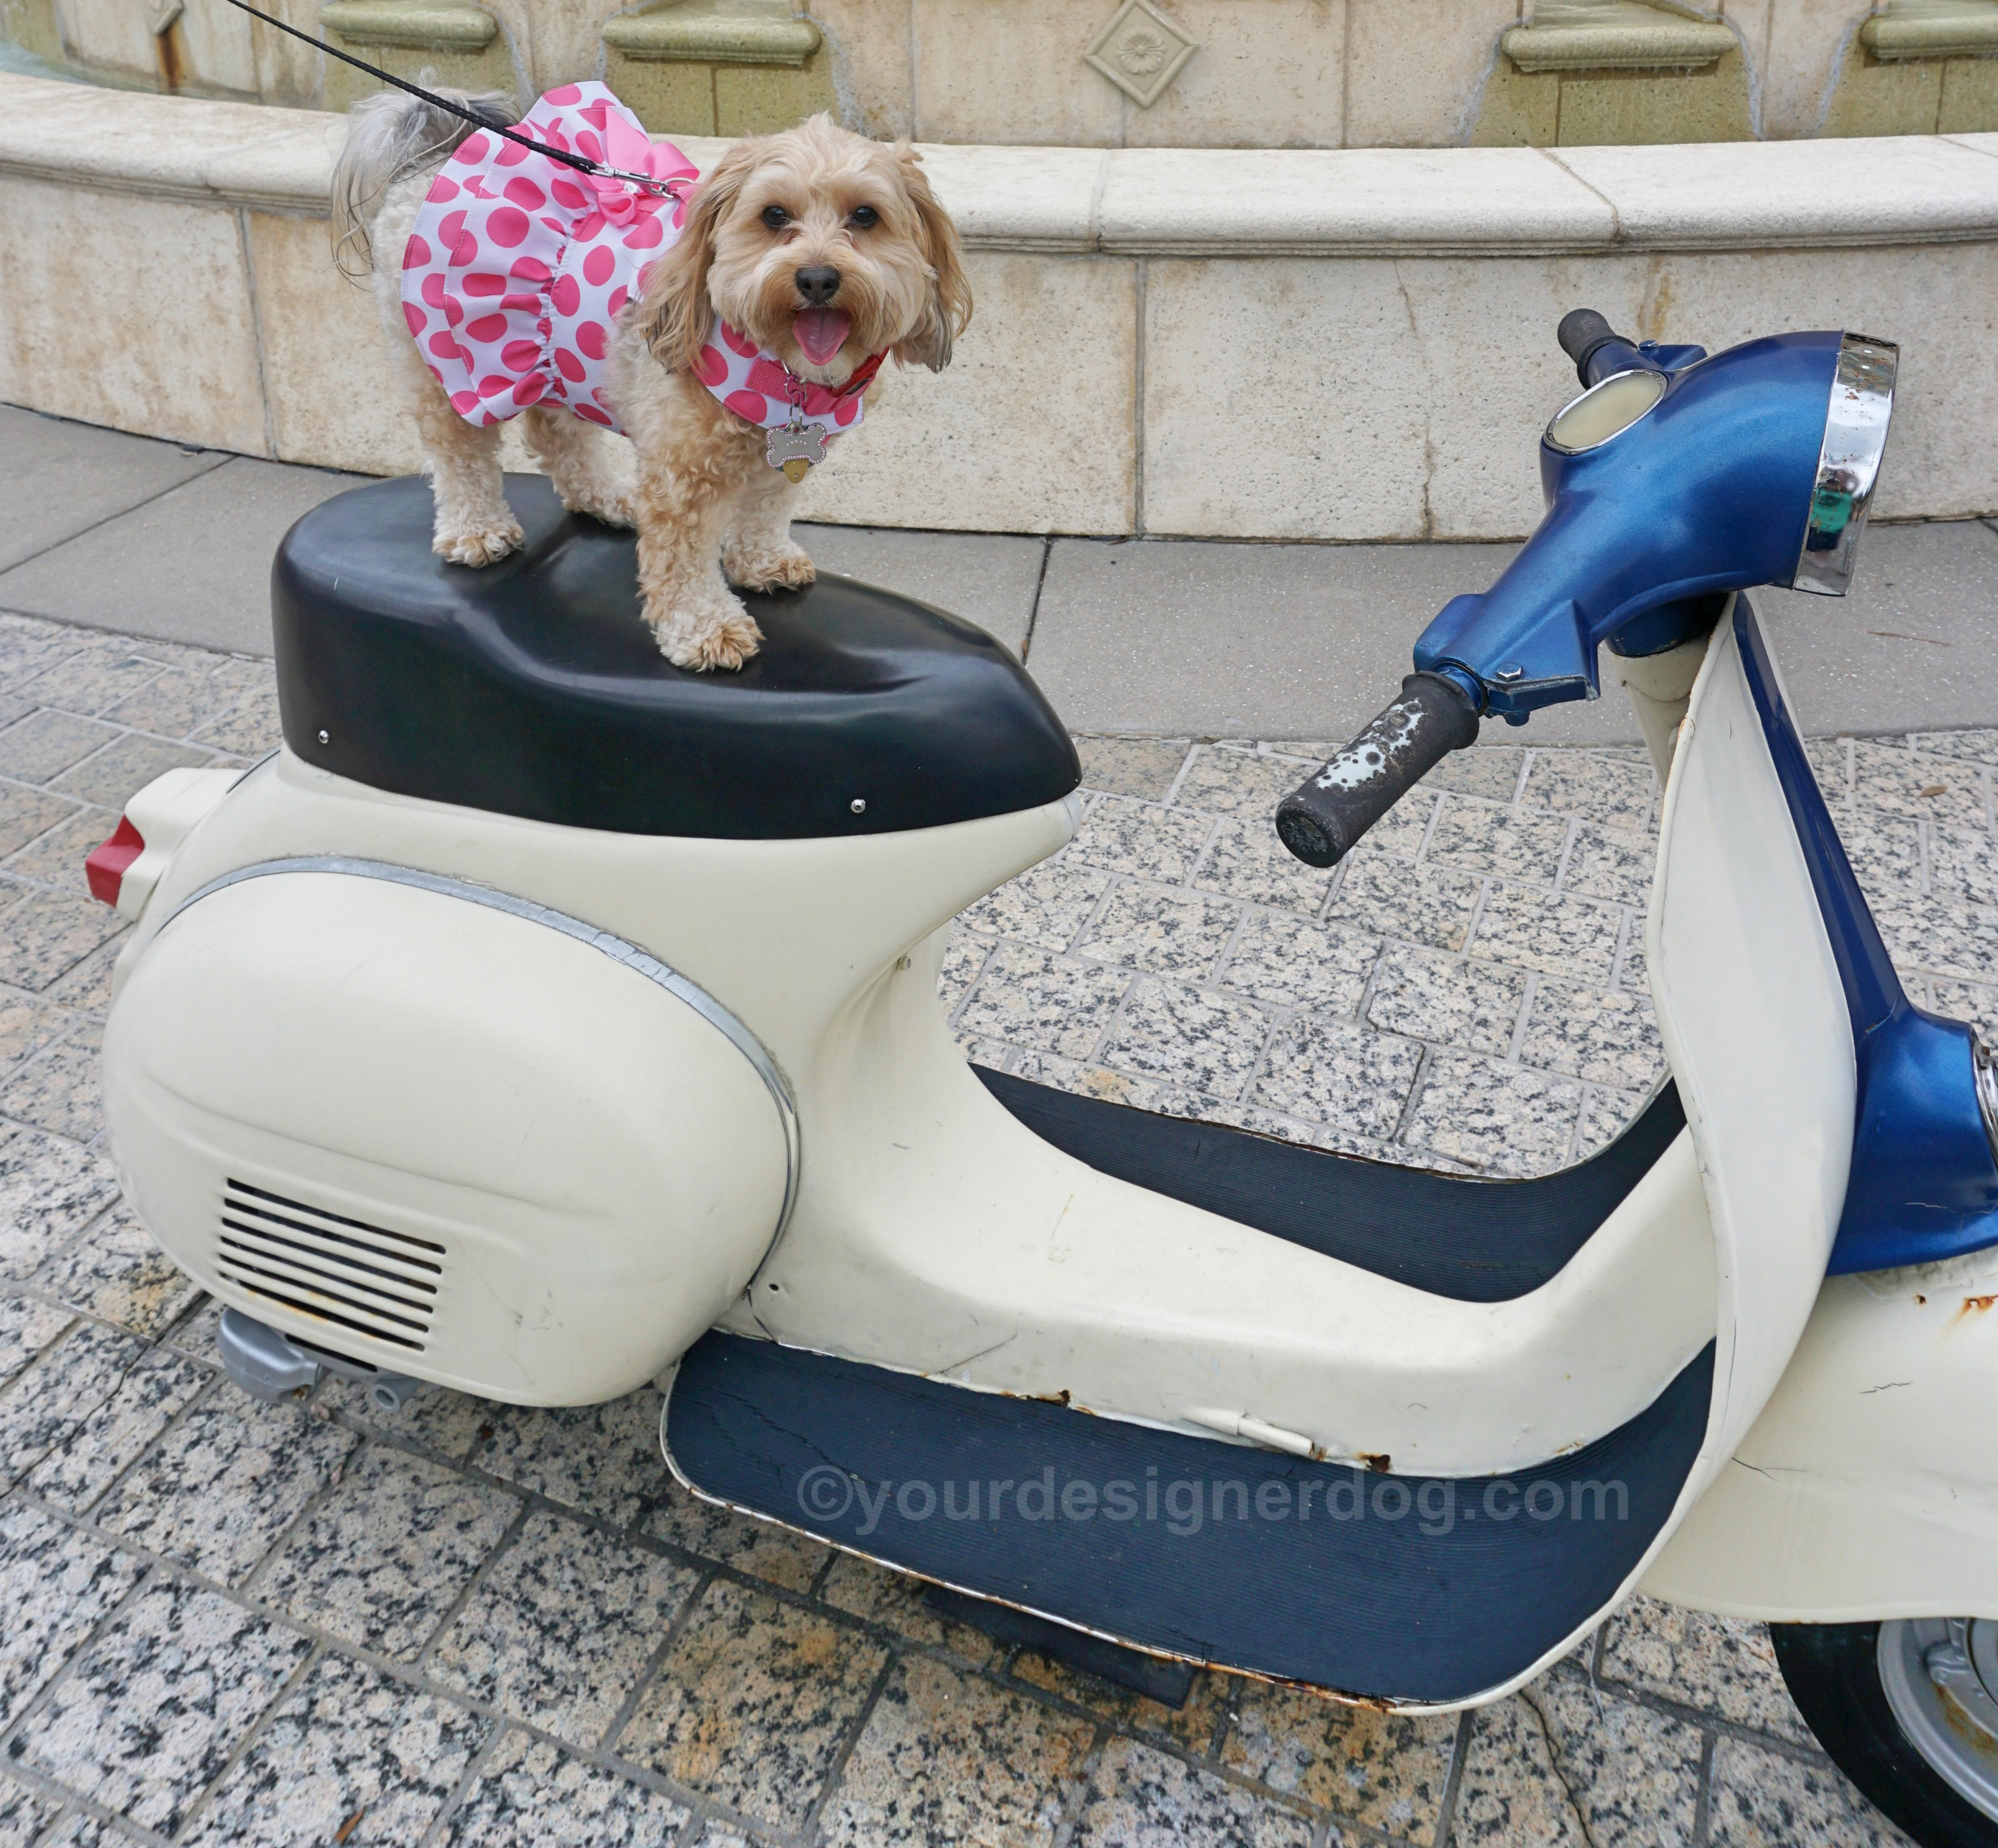 Tongue Out Tuesday on a Scooter